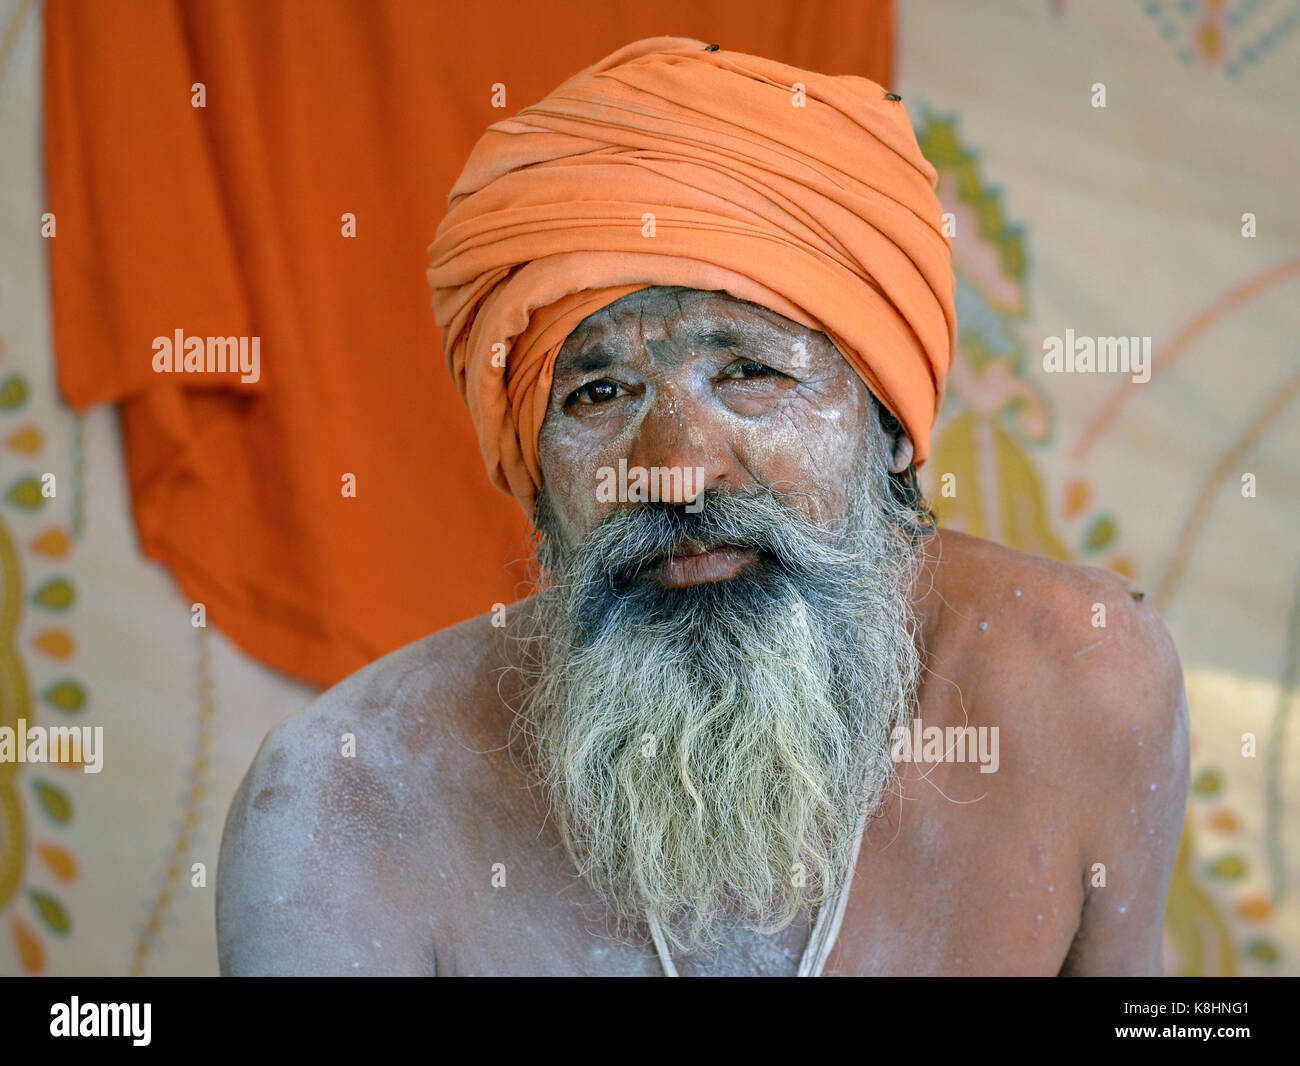 Old Indian Hindu sadhu with orange turban and sacred white ash (vibhuti) all over his face and beard - Stock Image